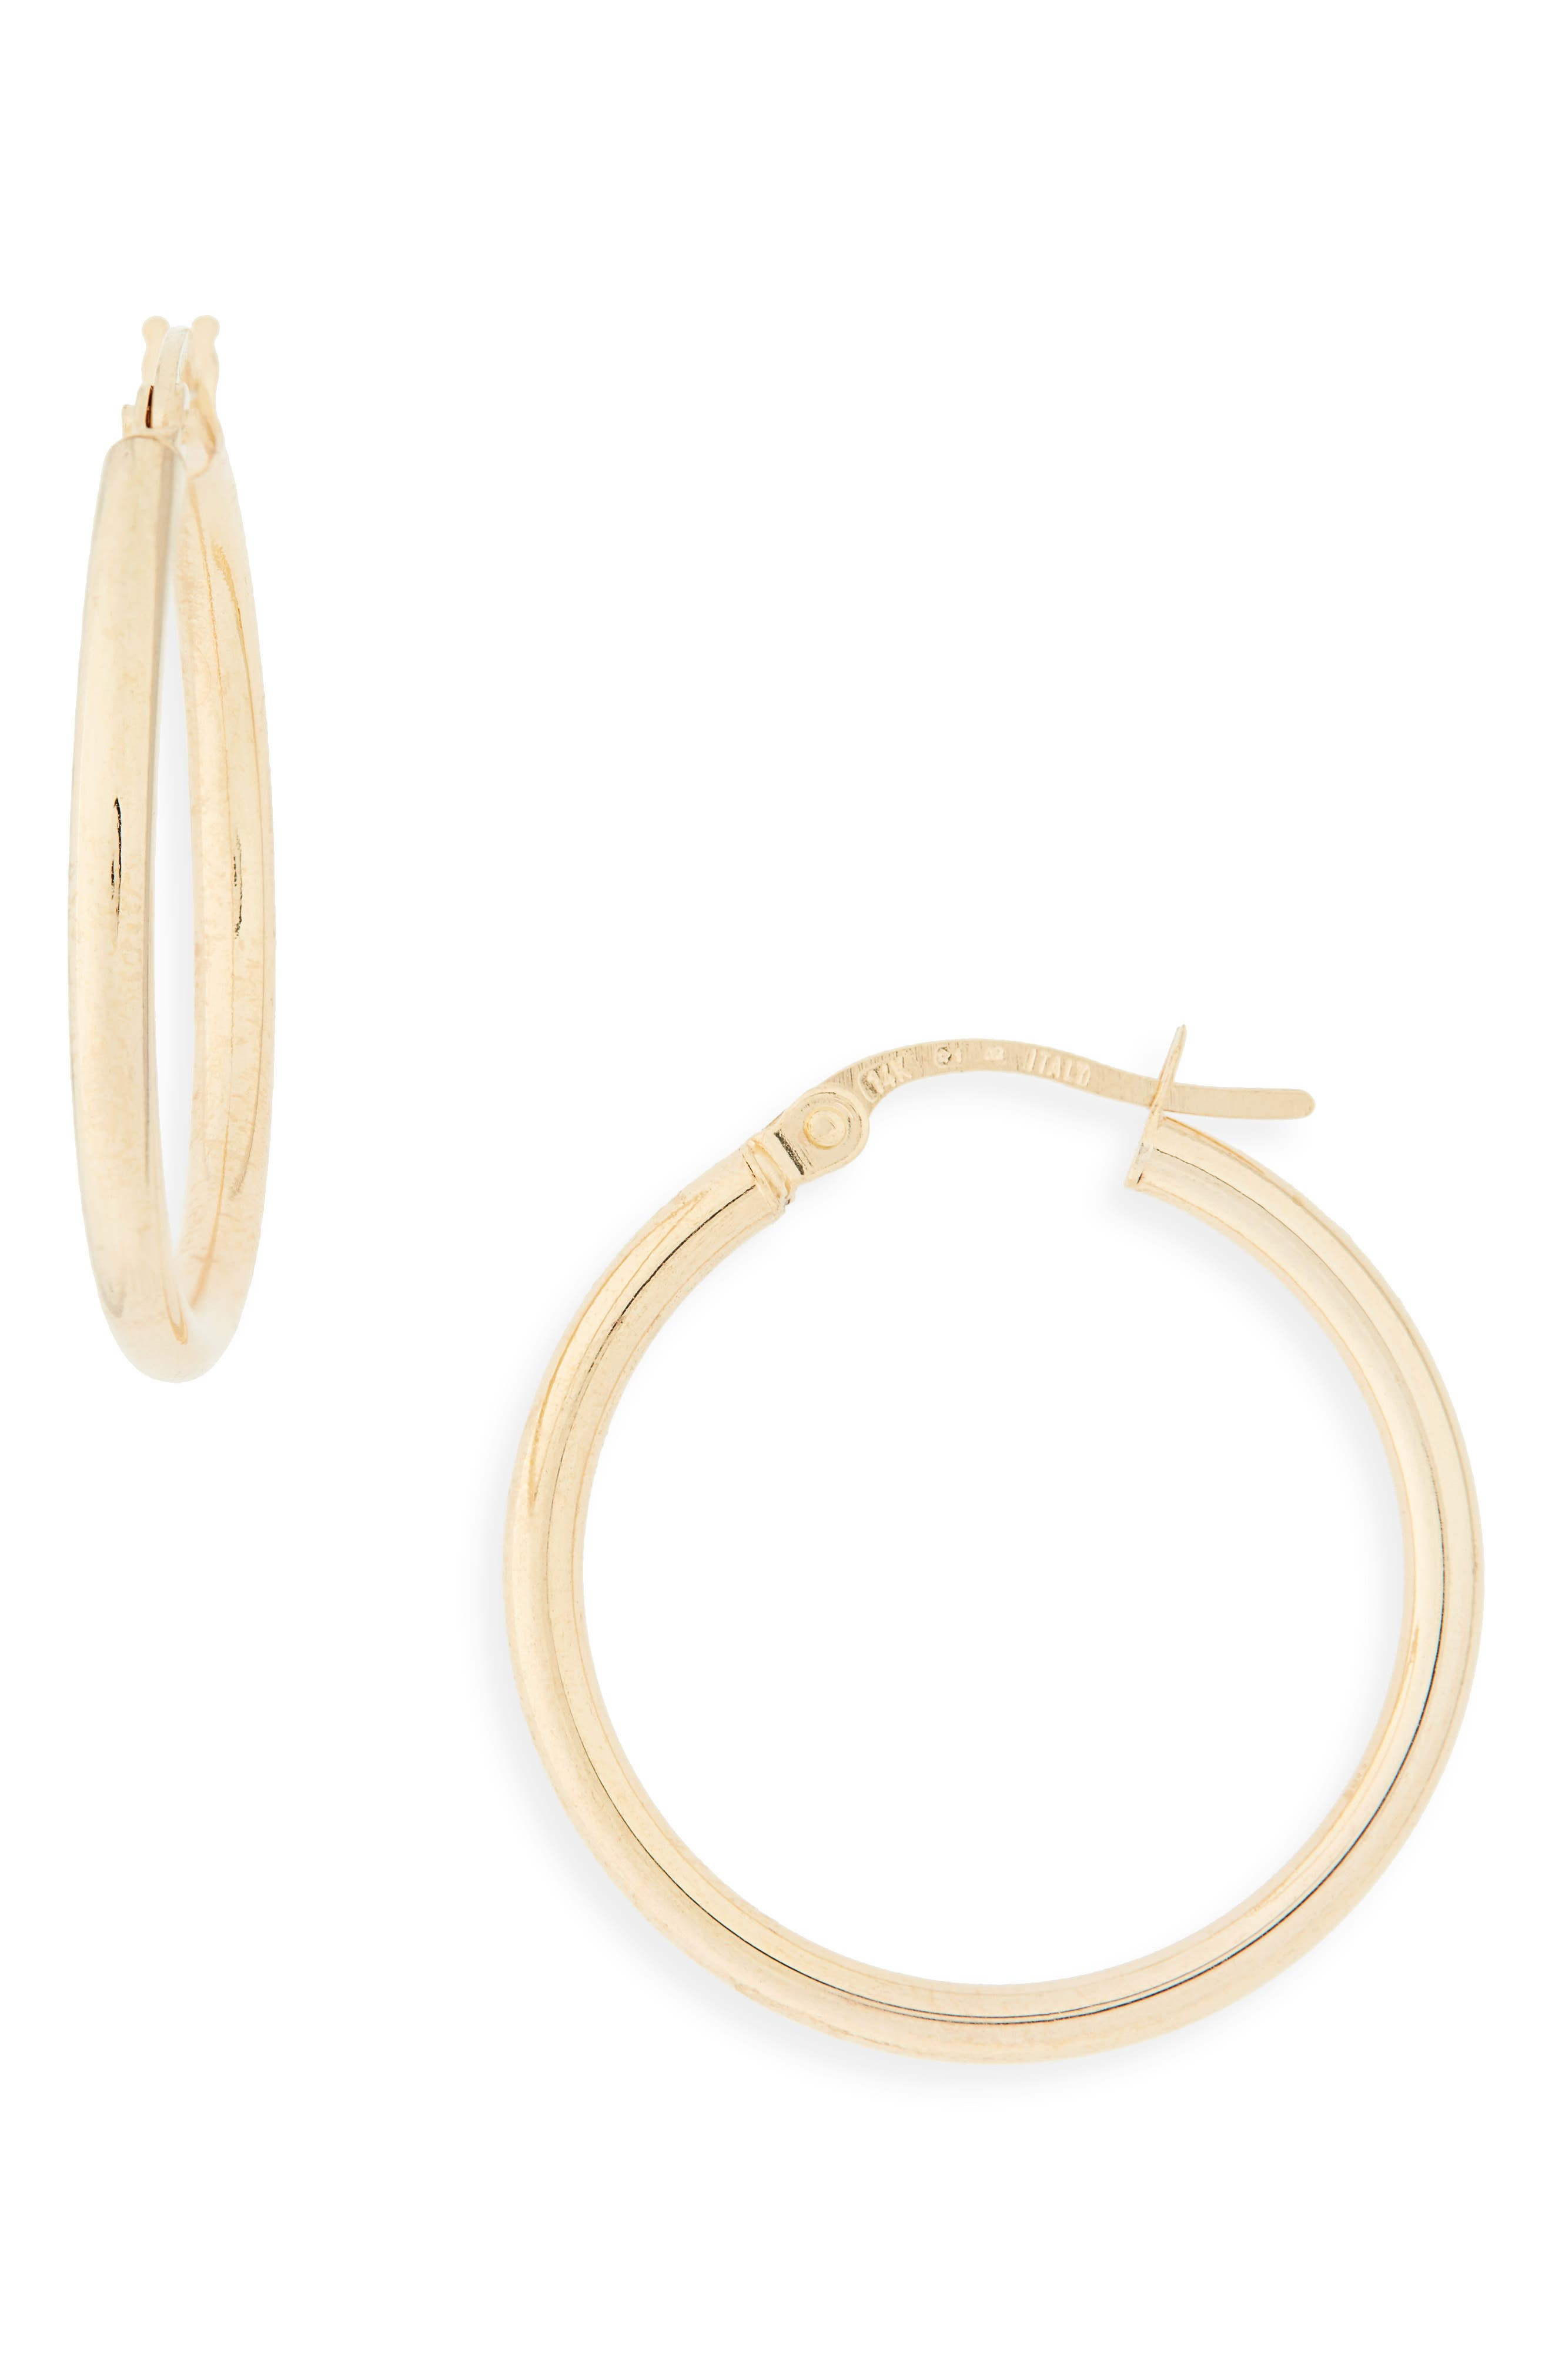 BONY LEVY, 14k Gold Hoop Earrings, Main thumbnail 1, color, YELLOW GOLD